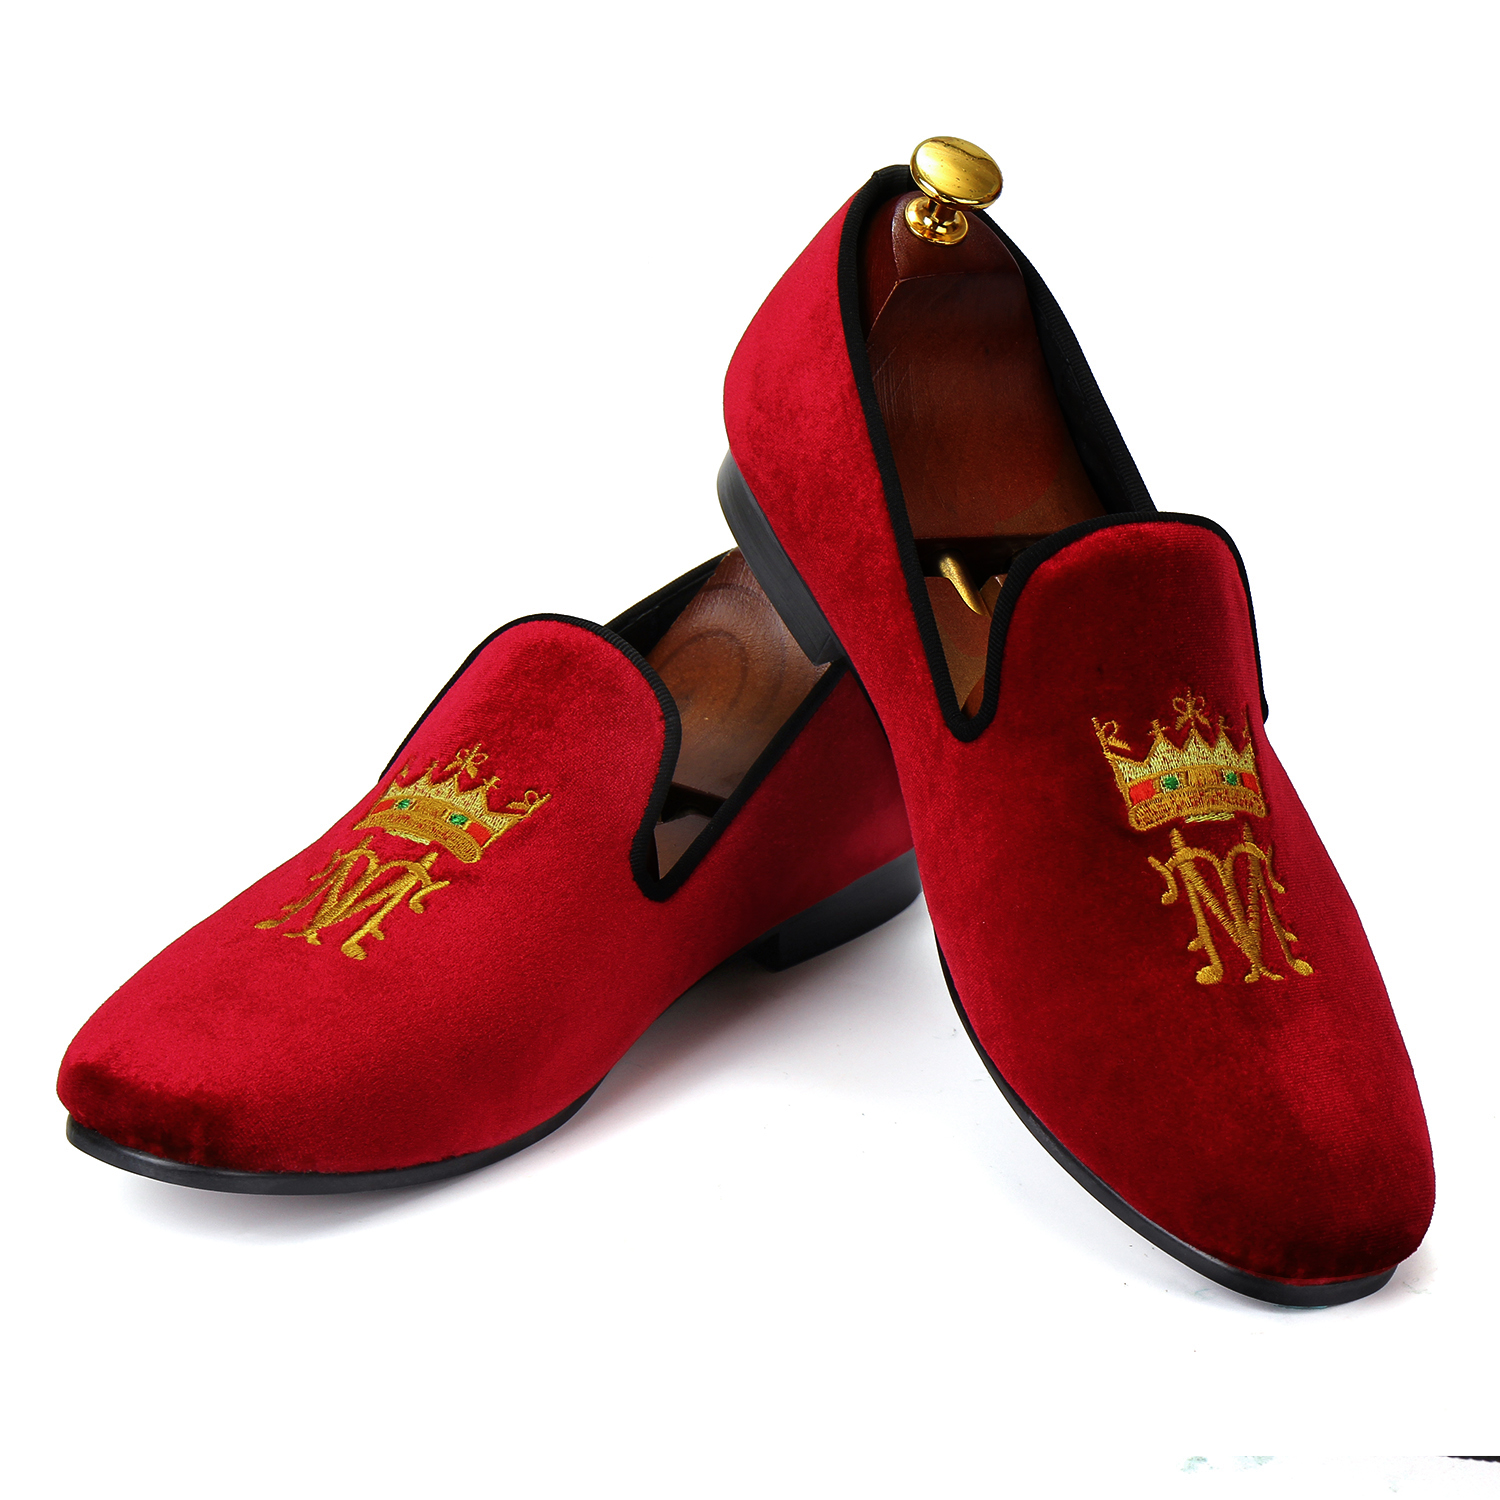 Harpelunde New Arrival Men Shoes Casual Burgundy Velvet Loafers Embroidery Smoking Slippers Size 7-13